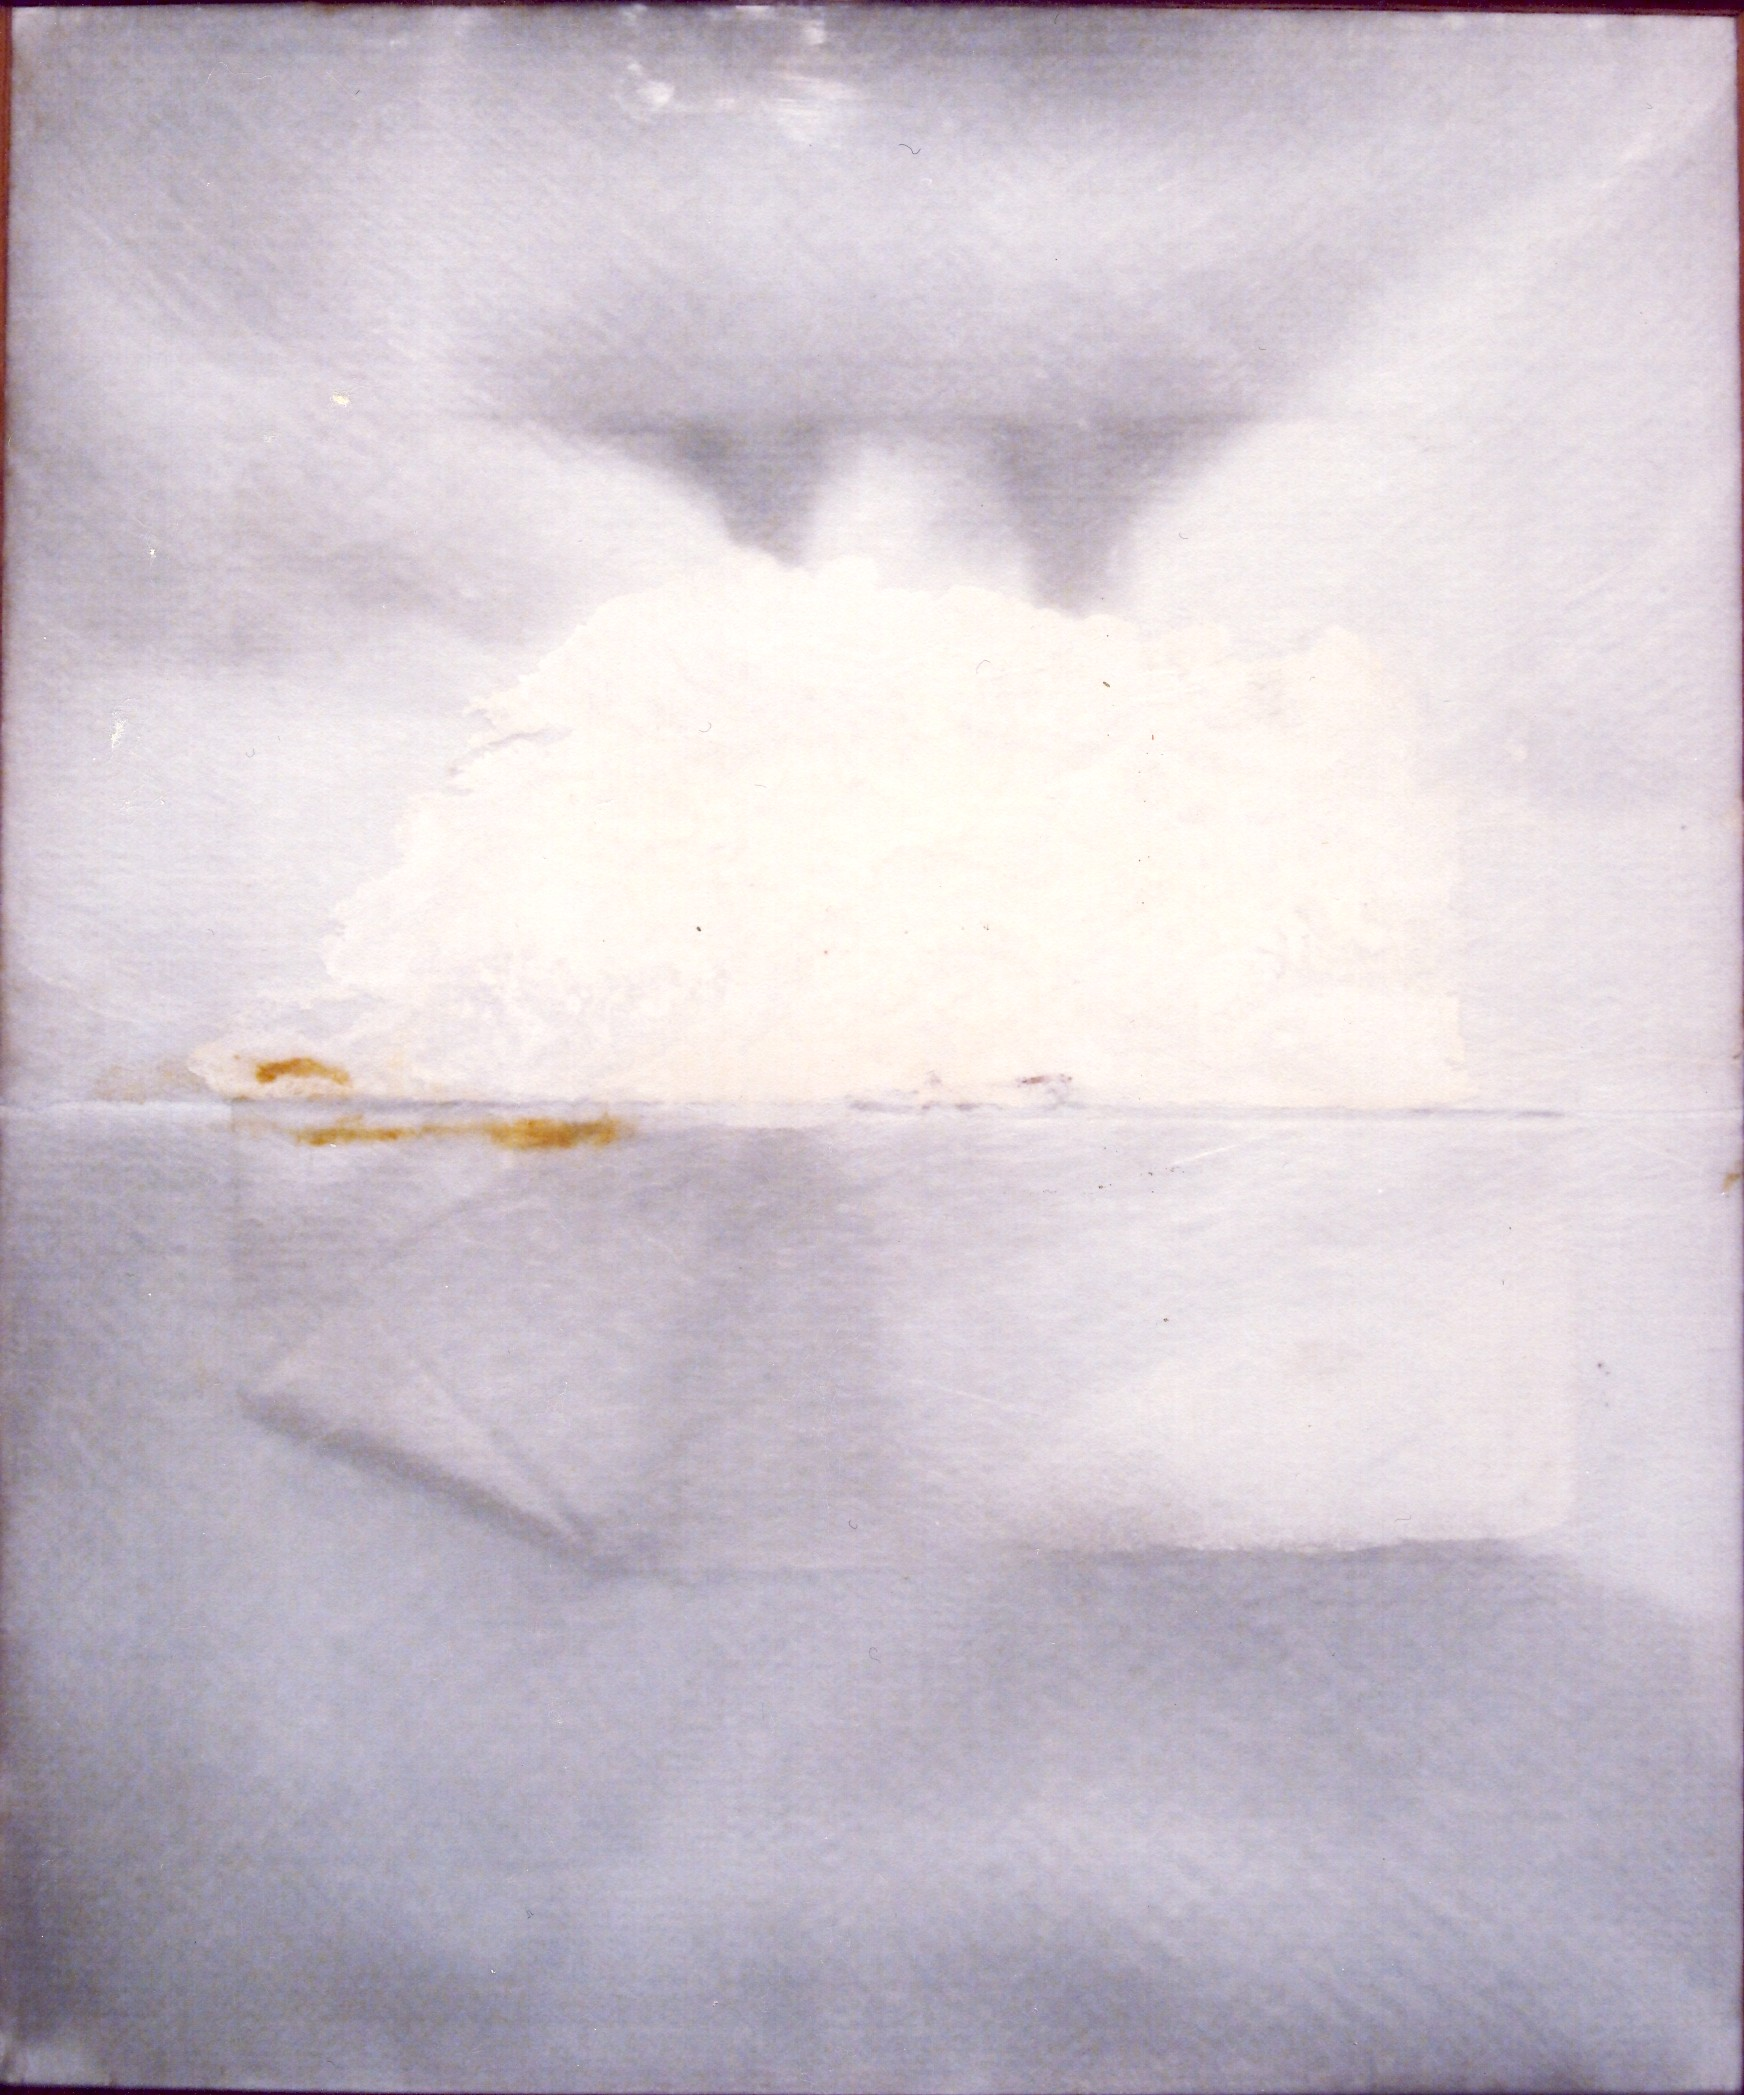 Grande bianco, 1973, lana di vetro e colla su tela, cm 120 x 100    Grande bianco, 1973, glass wool and glue on canvas, cm 120 x 100